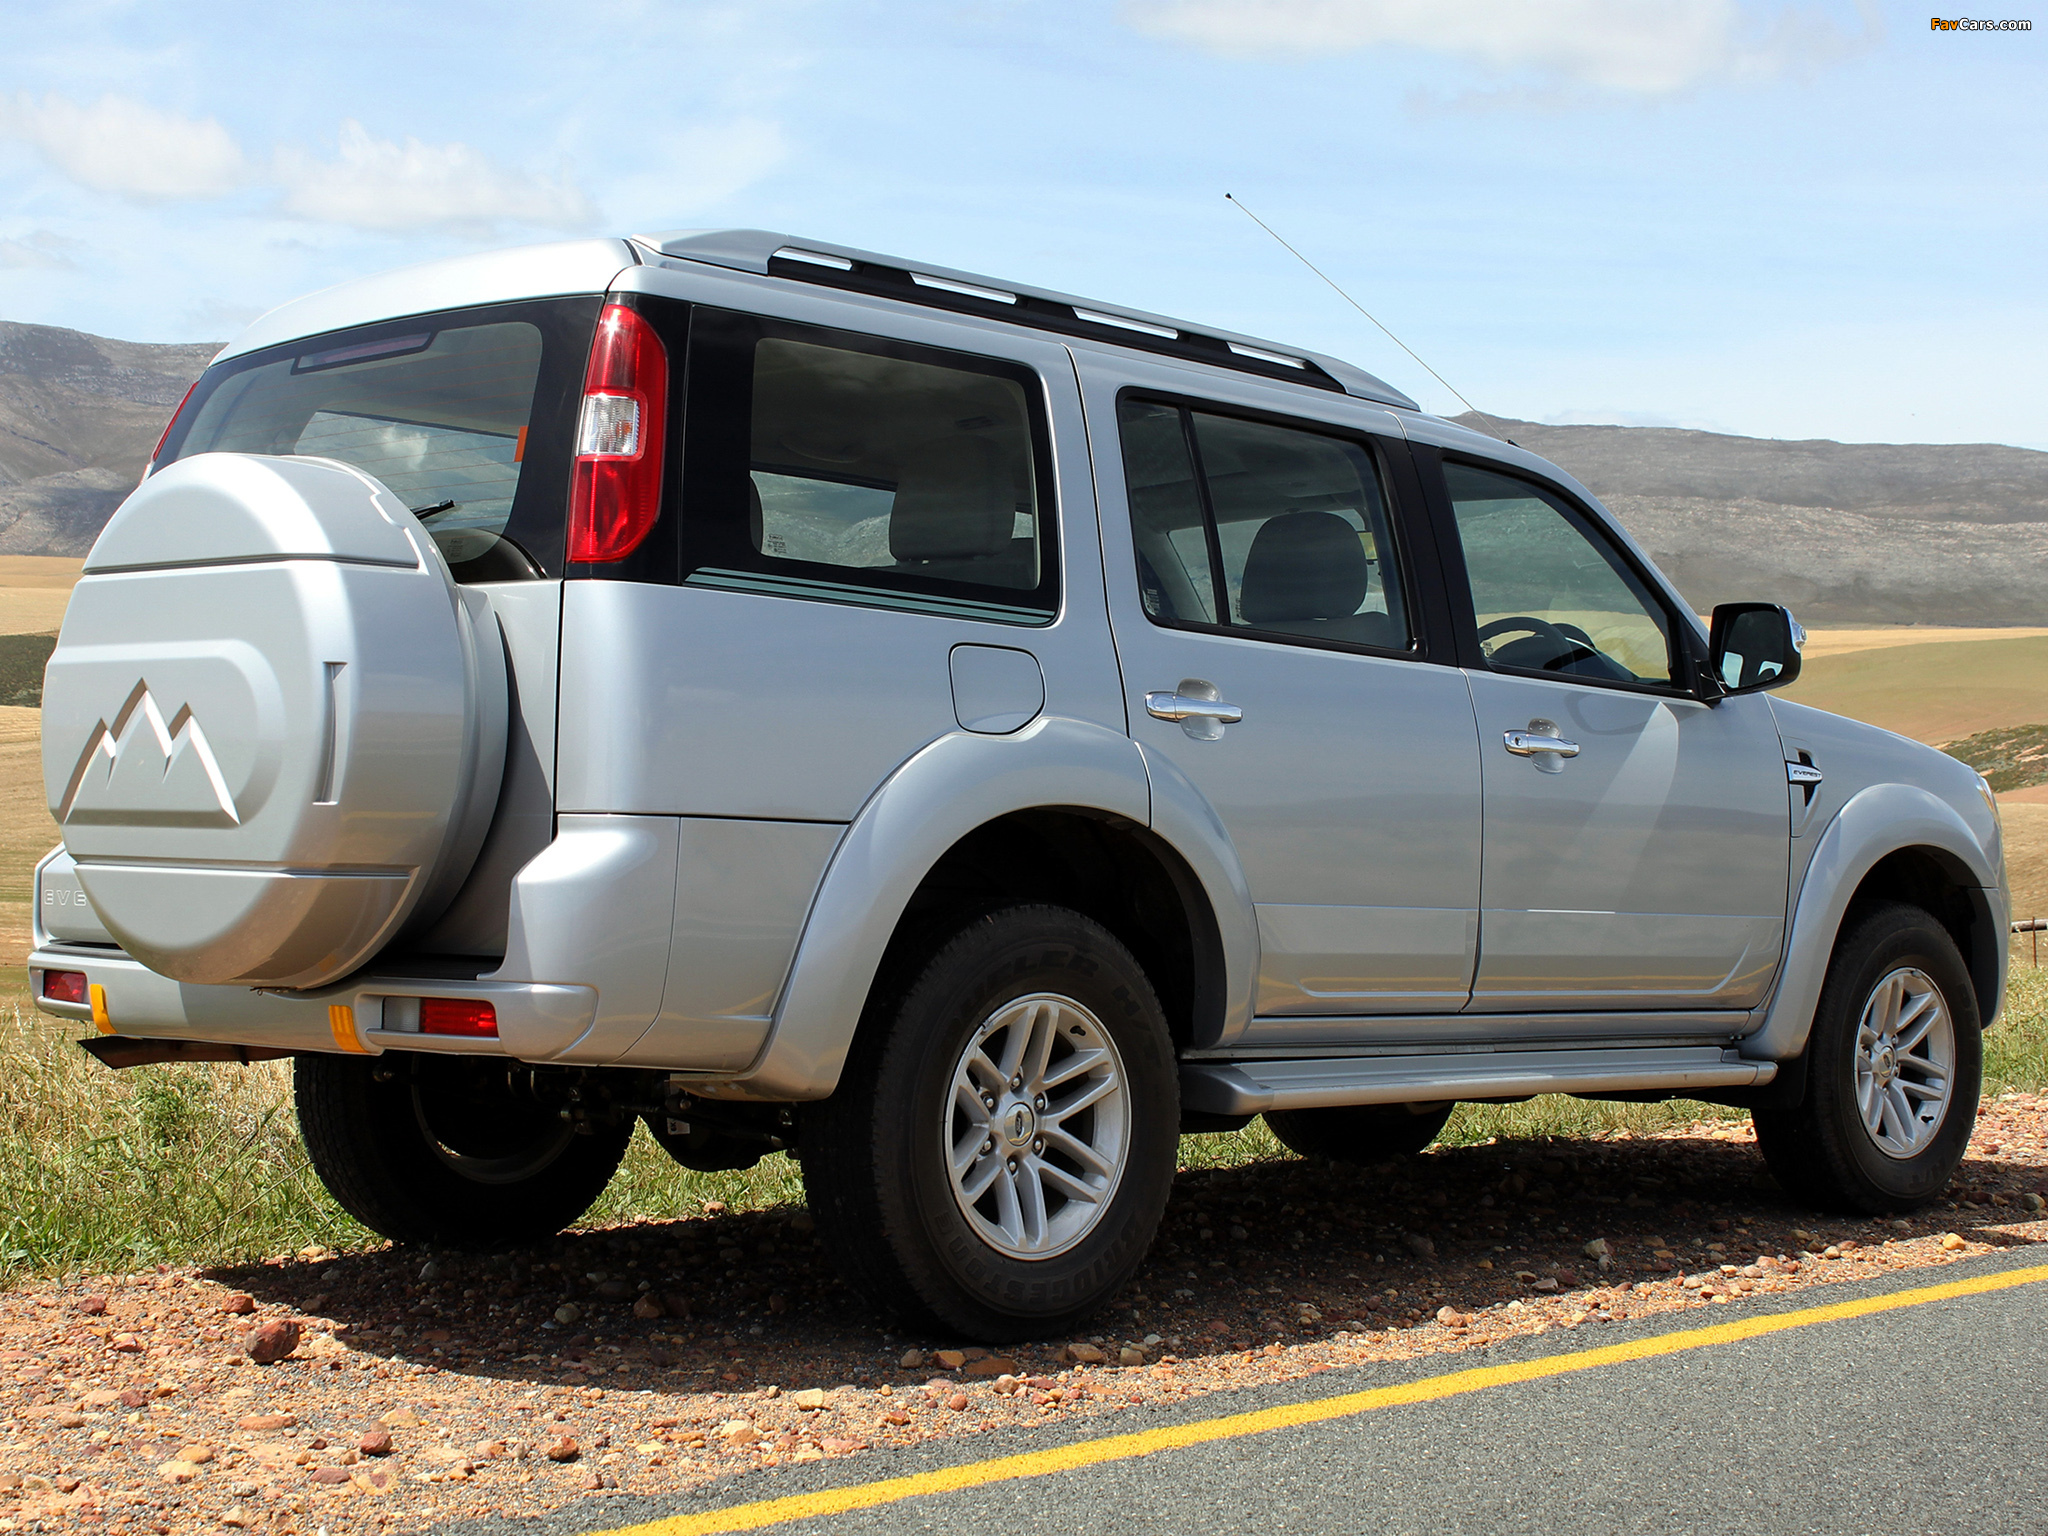 Ford everest 2009 photo - 2